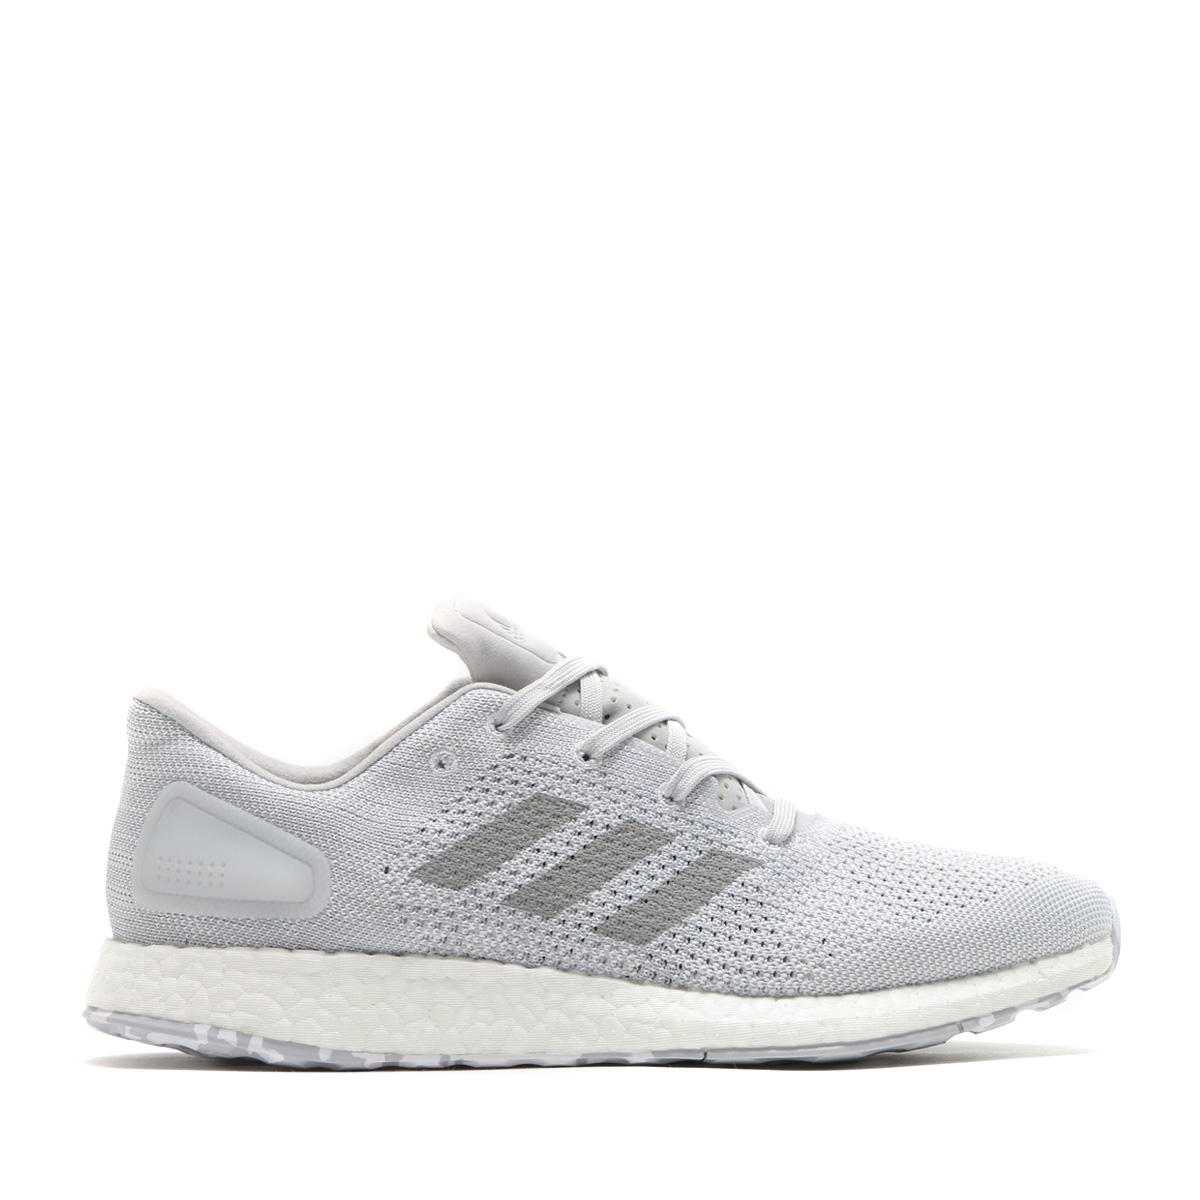 e0aa8434c0470 adidas Originals PureBOOST DPR LTD(アディダス ピュアブースト DPR LTD)(Running White Mid  Grey Solid Grey)  メンズ 17FW-I ☆20・お取り寄せ商品☆